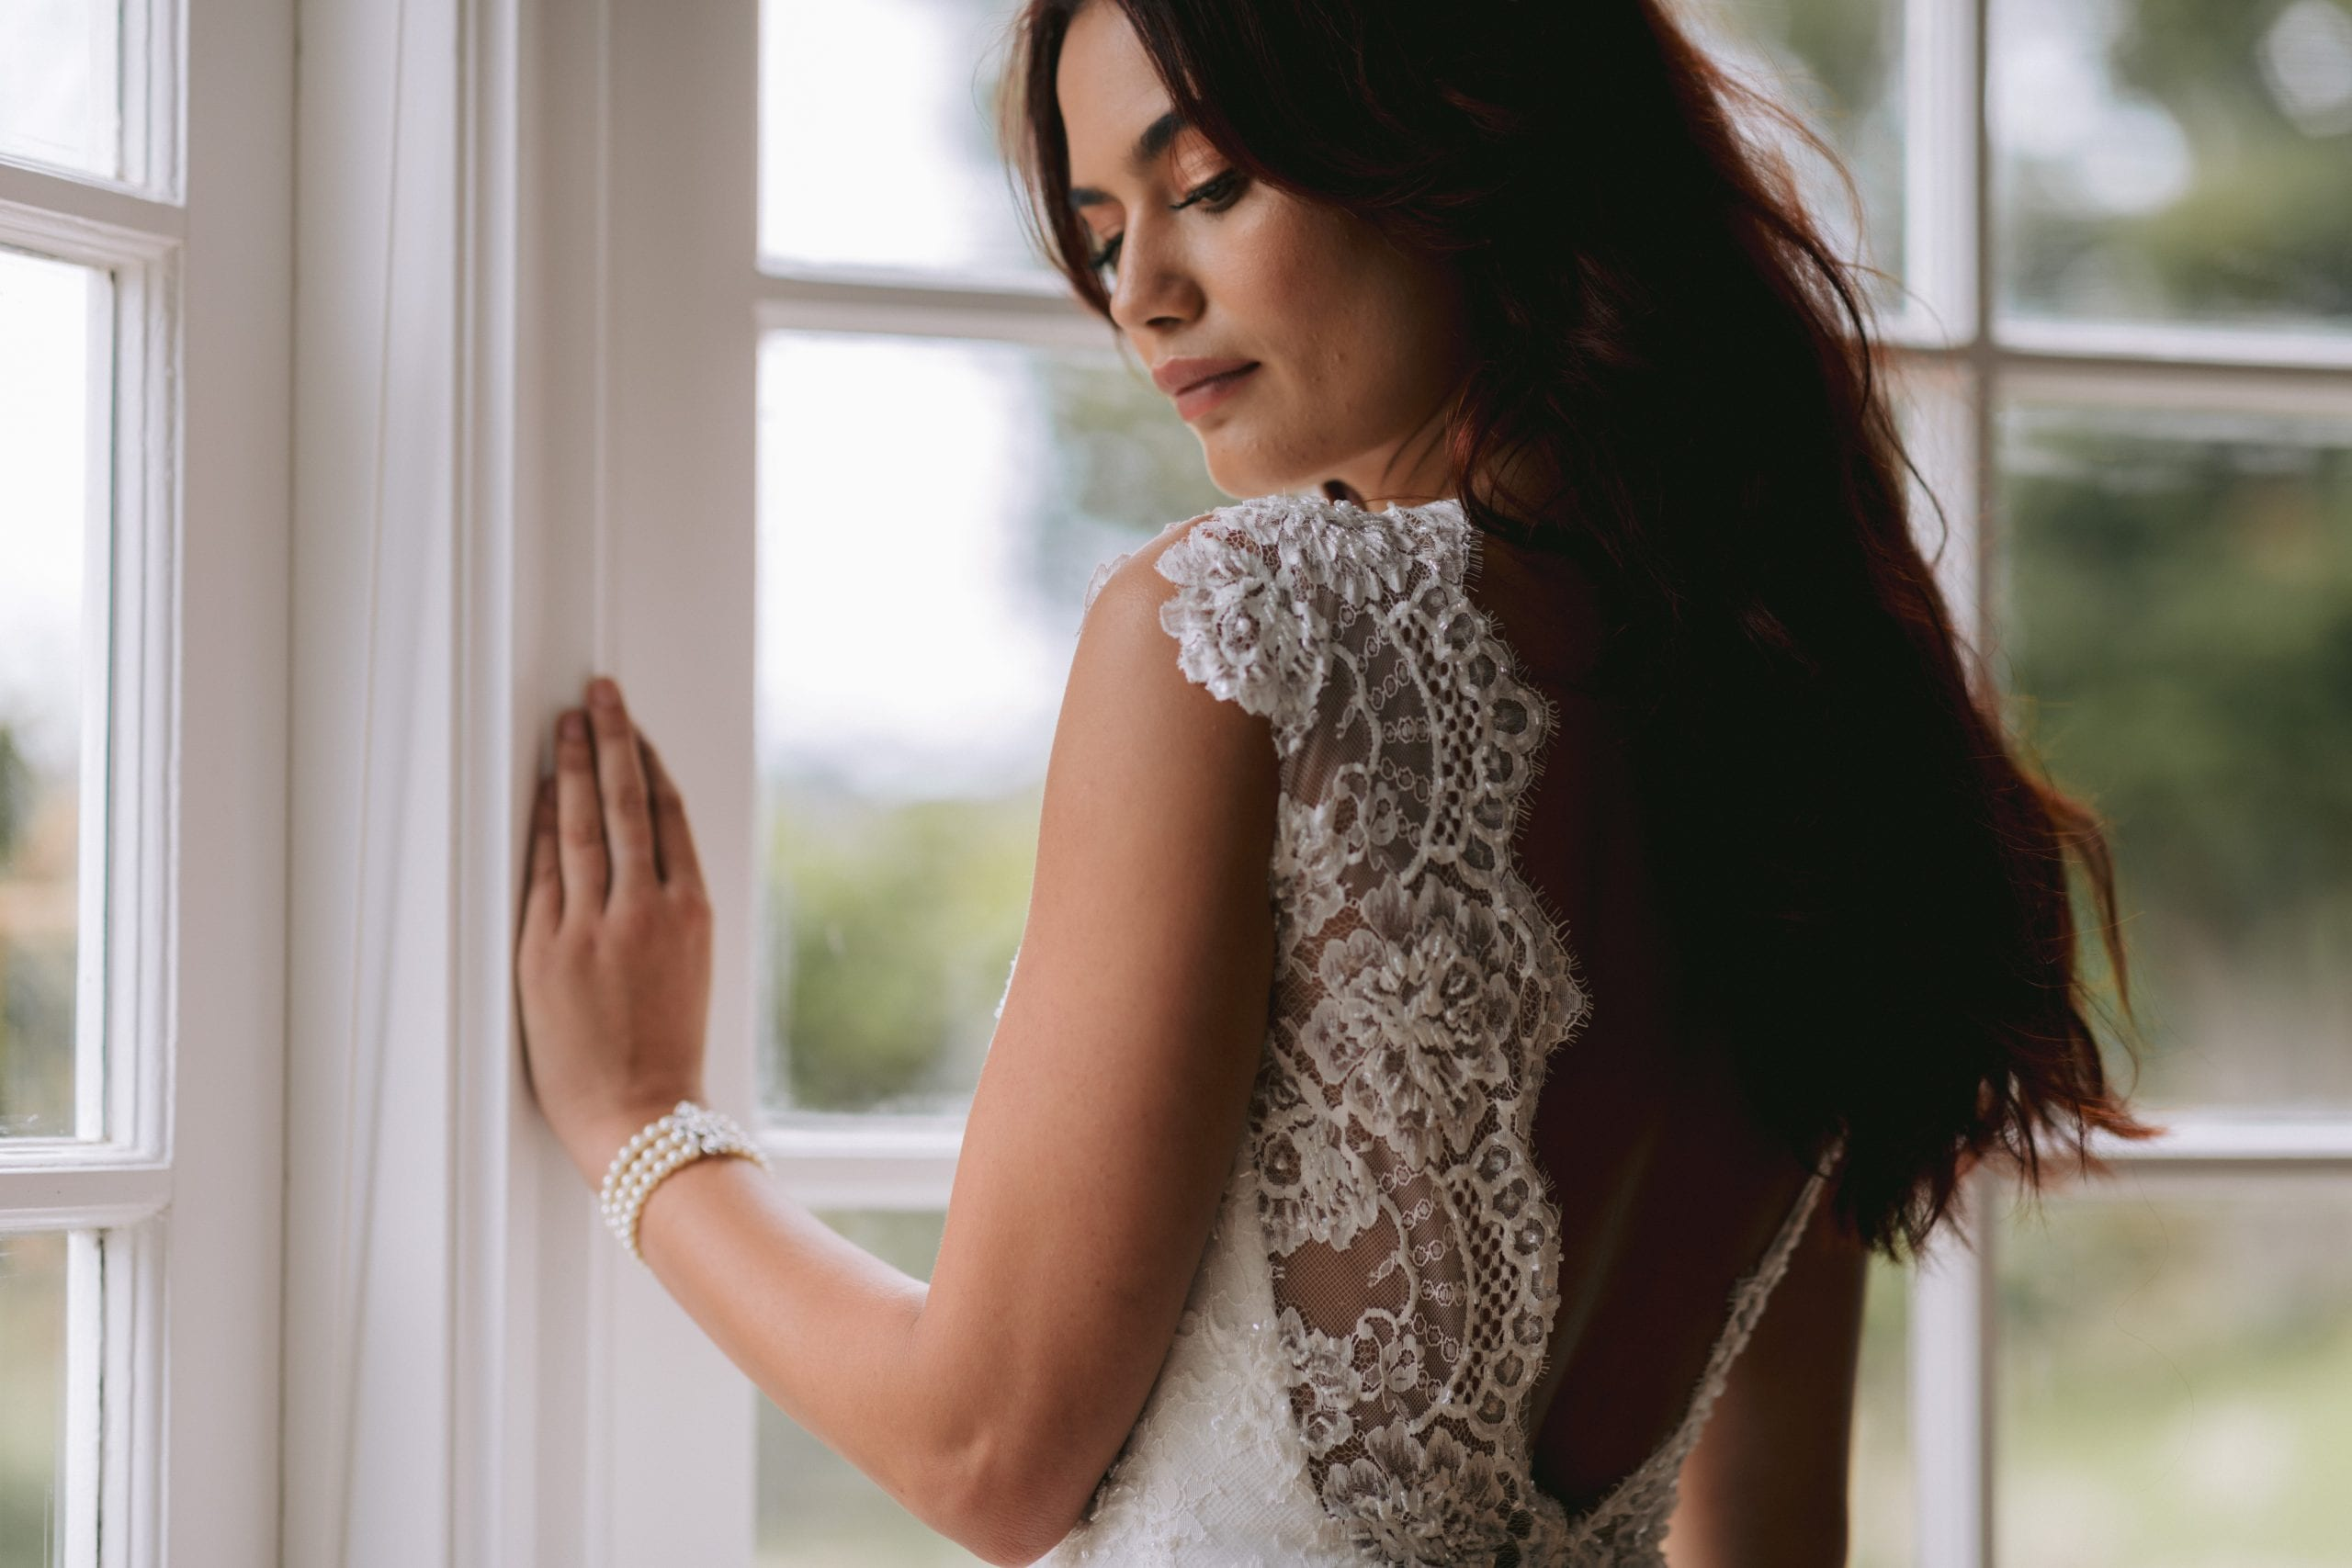 Fallyn Wedding gown from Vinka Design - This wedding dress is a timeless classic. Dramatic scallop lace and deep V-shaped neckline with beautiful low back and mini cap sleeves. This gown is cut in a fit-and-flare design with a side split. Model wearing gown showing mini cap sleeves.